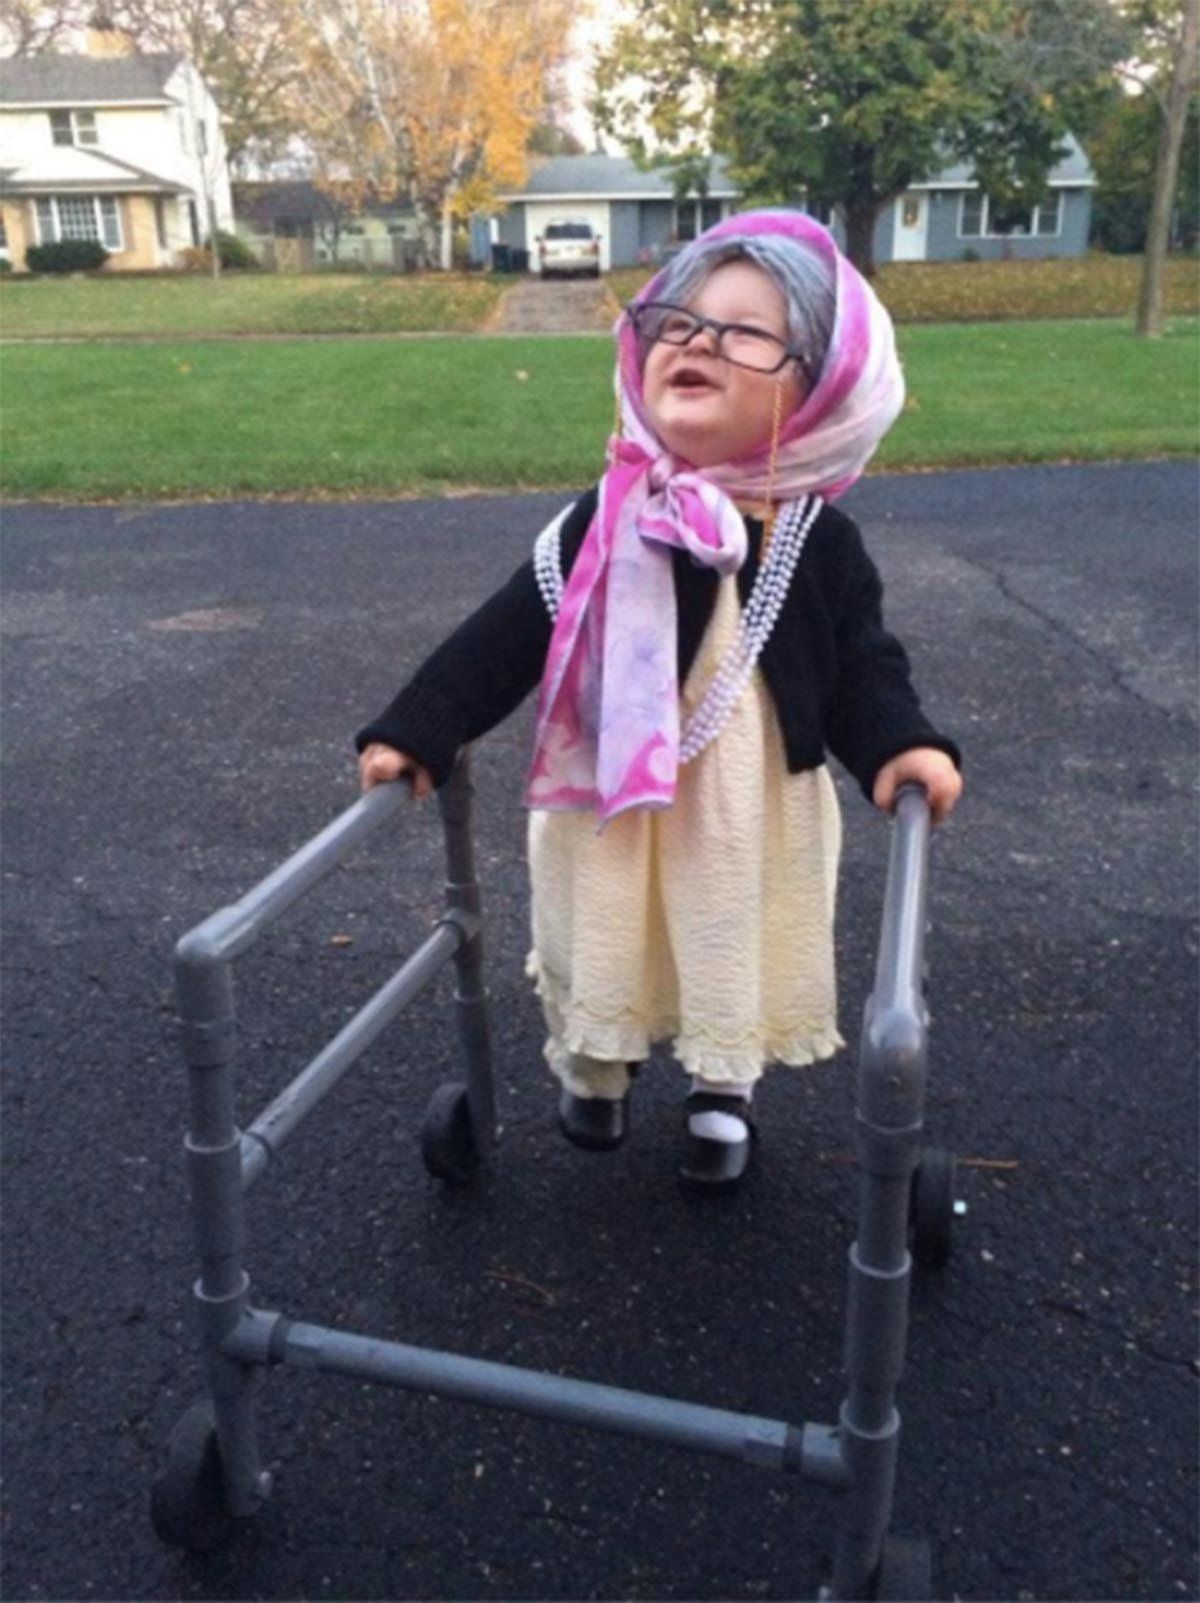 Imgur Just 20 Photos Of Kids Dressed As Old People cause Its Ridiculously Cute Huffpost Just 20 Photos Of Kids Dressed As Old People cause Its